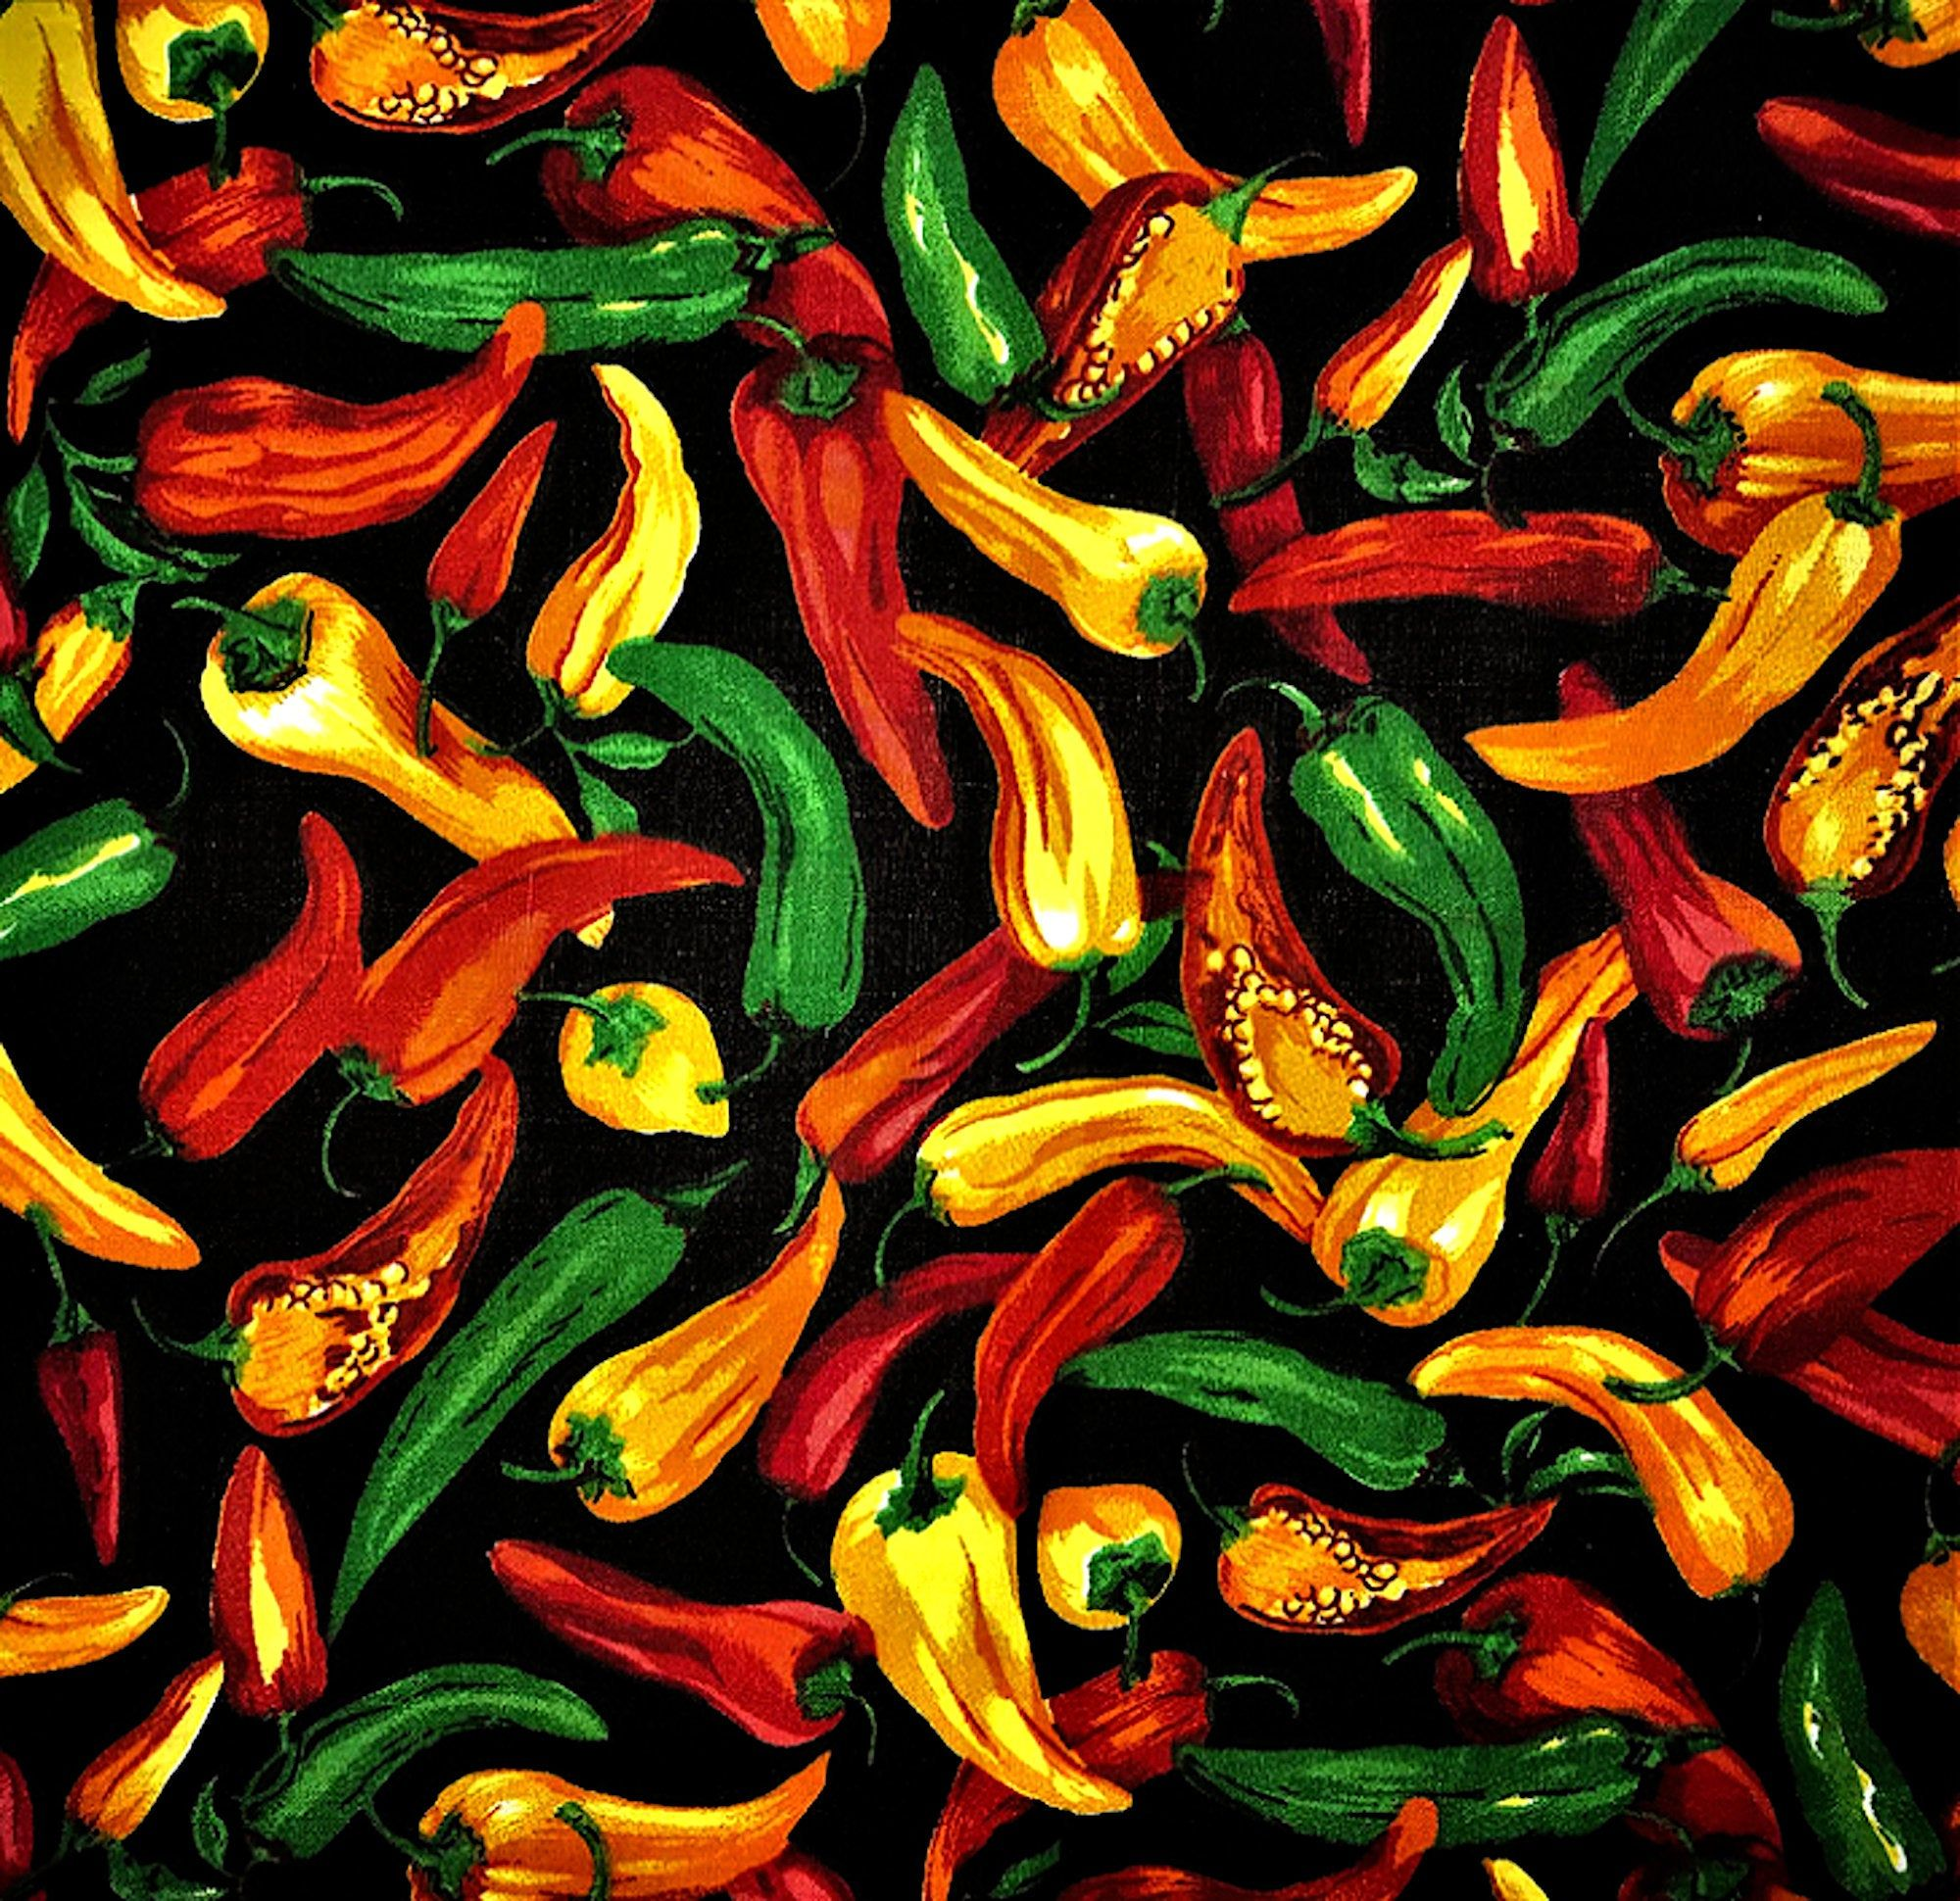 Chili Pepper Fabric Cotton Fabric By The Yard Red Chili Etsy In 2020 Stuffed Hot Peppers Stuffed Peppers Red Chili